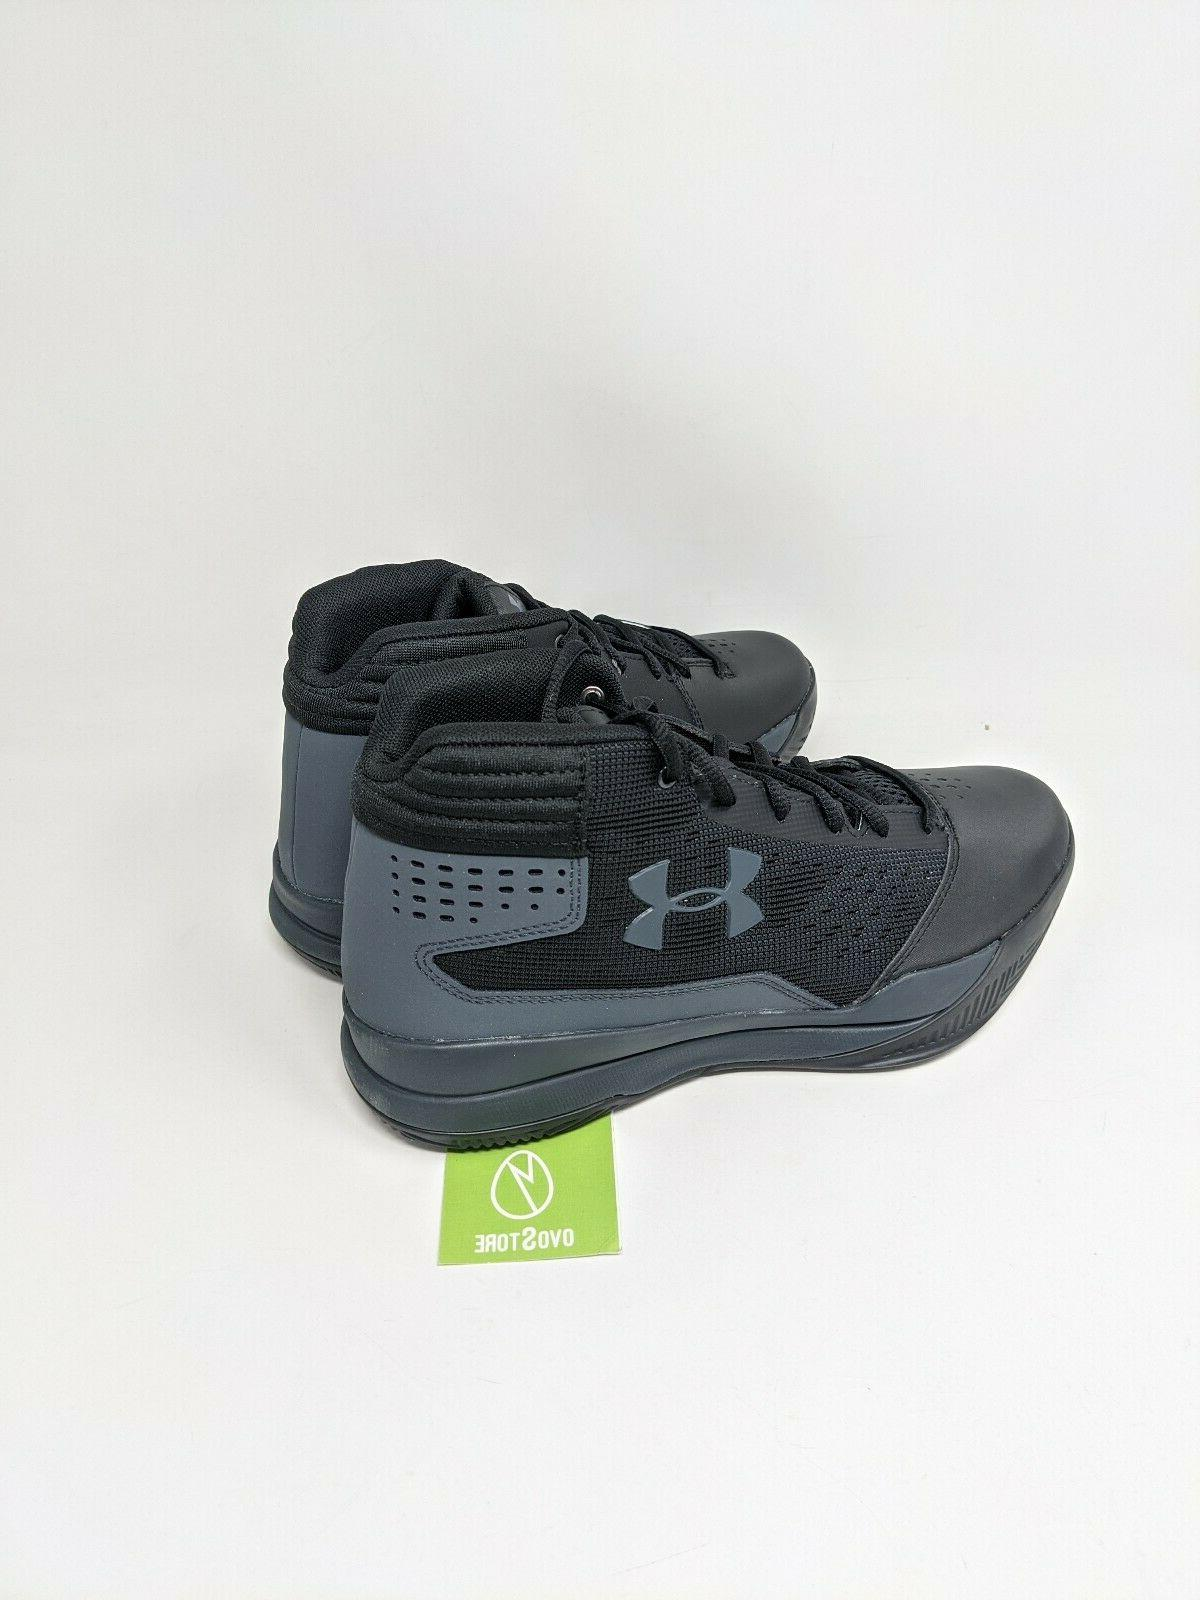 Under Armour JET basketball shoes 1296009-001